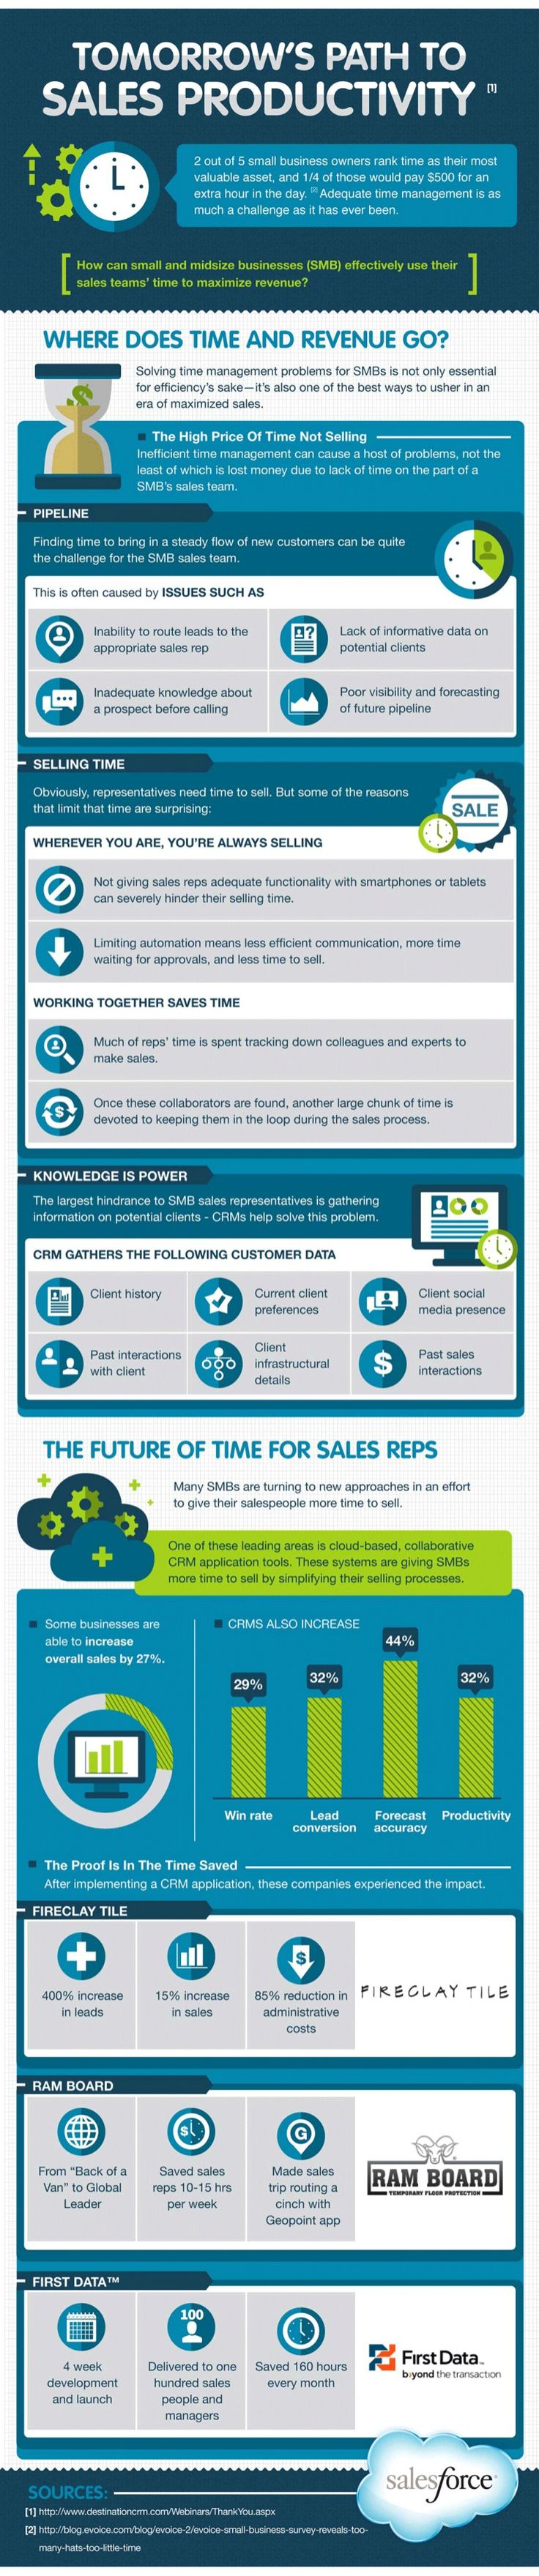 how-to-increase-small-business-sales by Salesforce via Slideshare